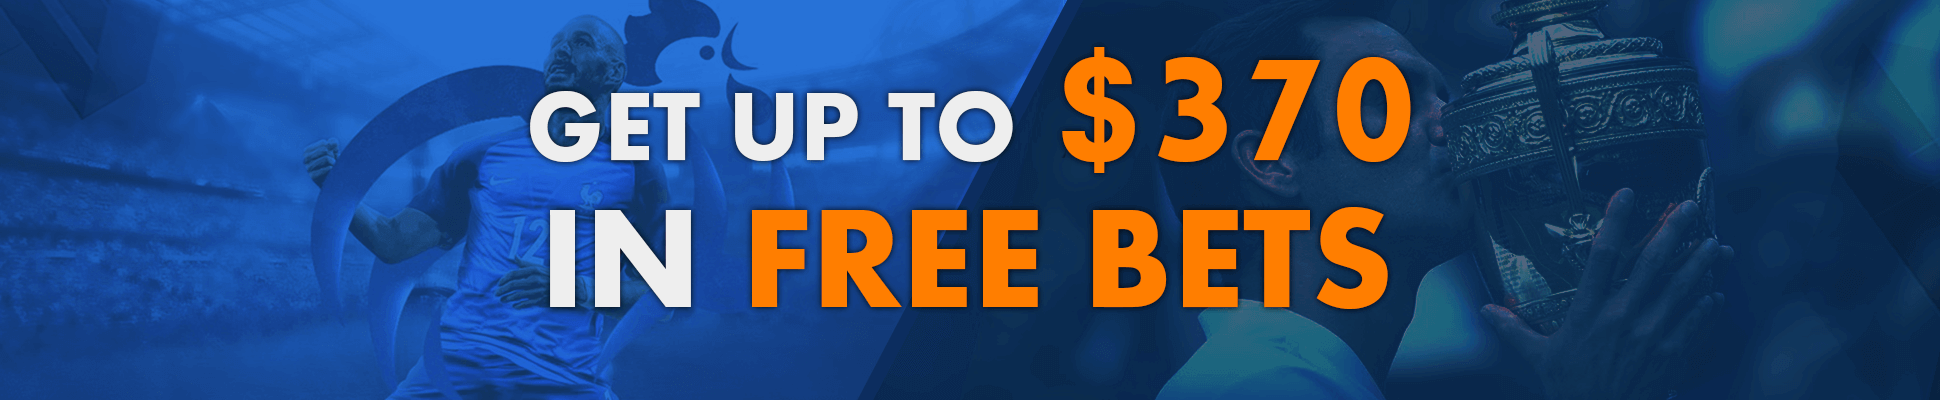 Vip Bet Free Bets Banner